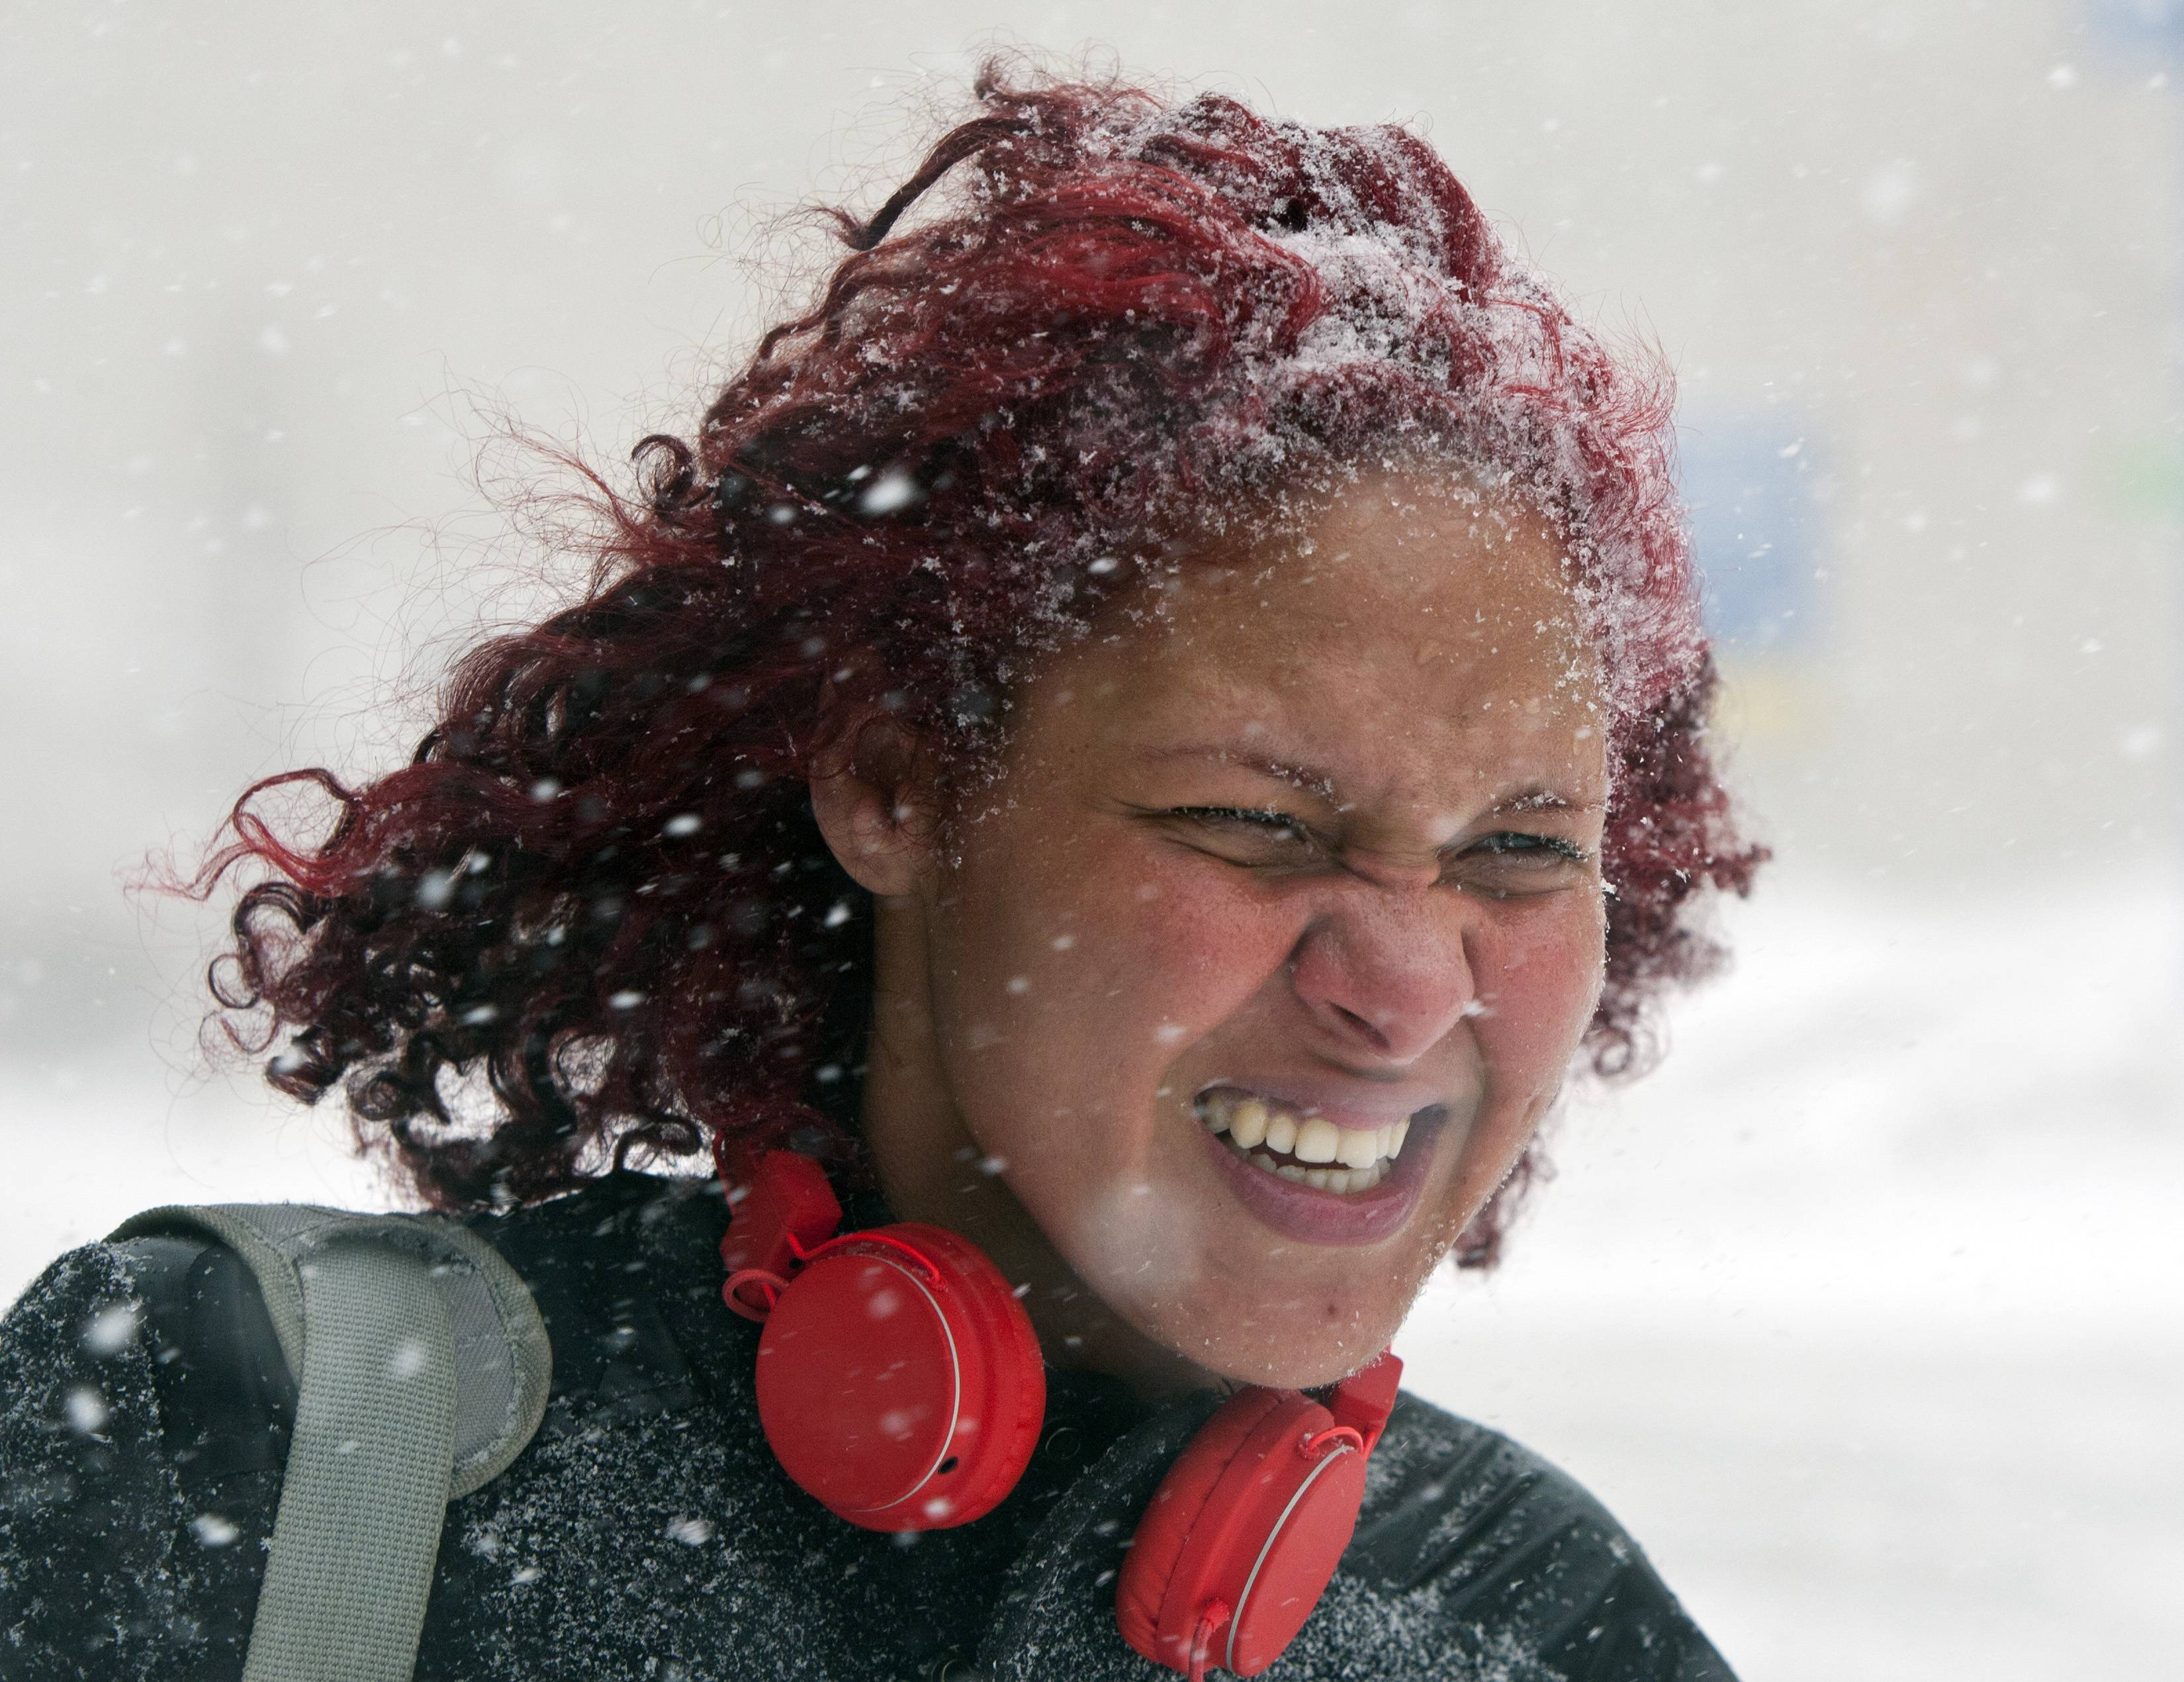 Grand Rapids Community College student Christina Lewis walks during a winter snowstorm, Monday, Feb. 17, 2014, in downtown Grand Rapids, Mich.